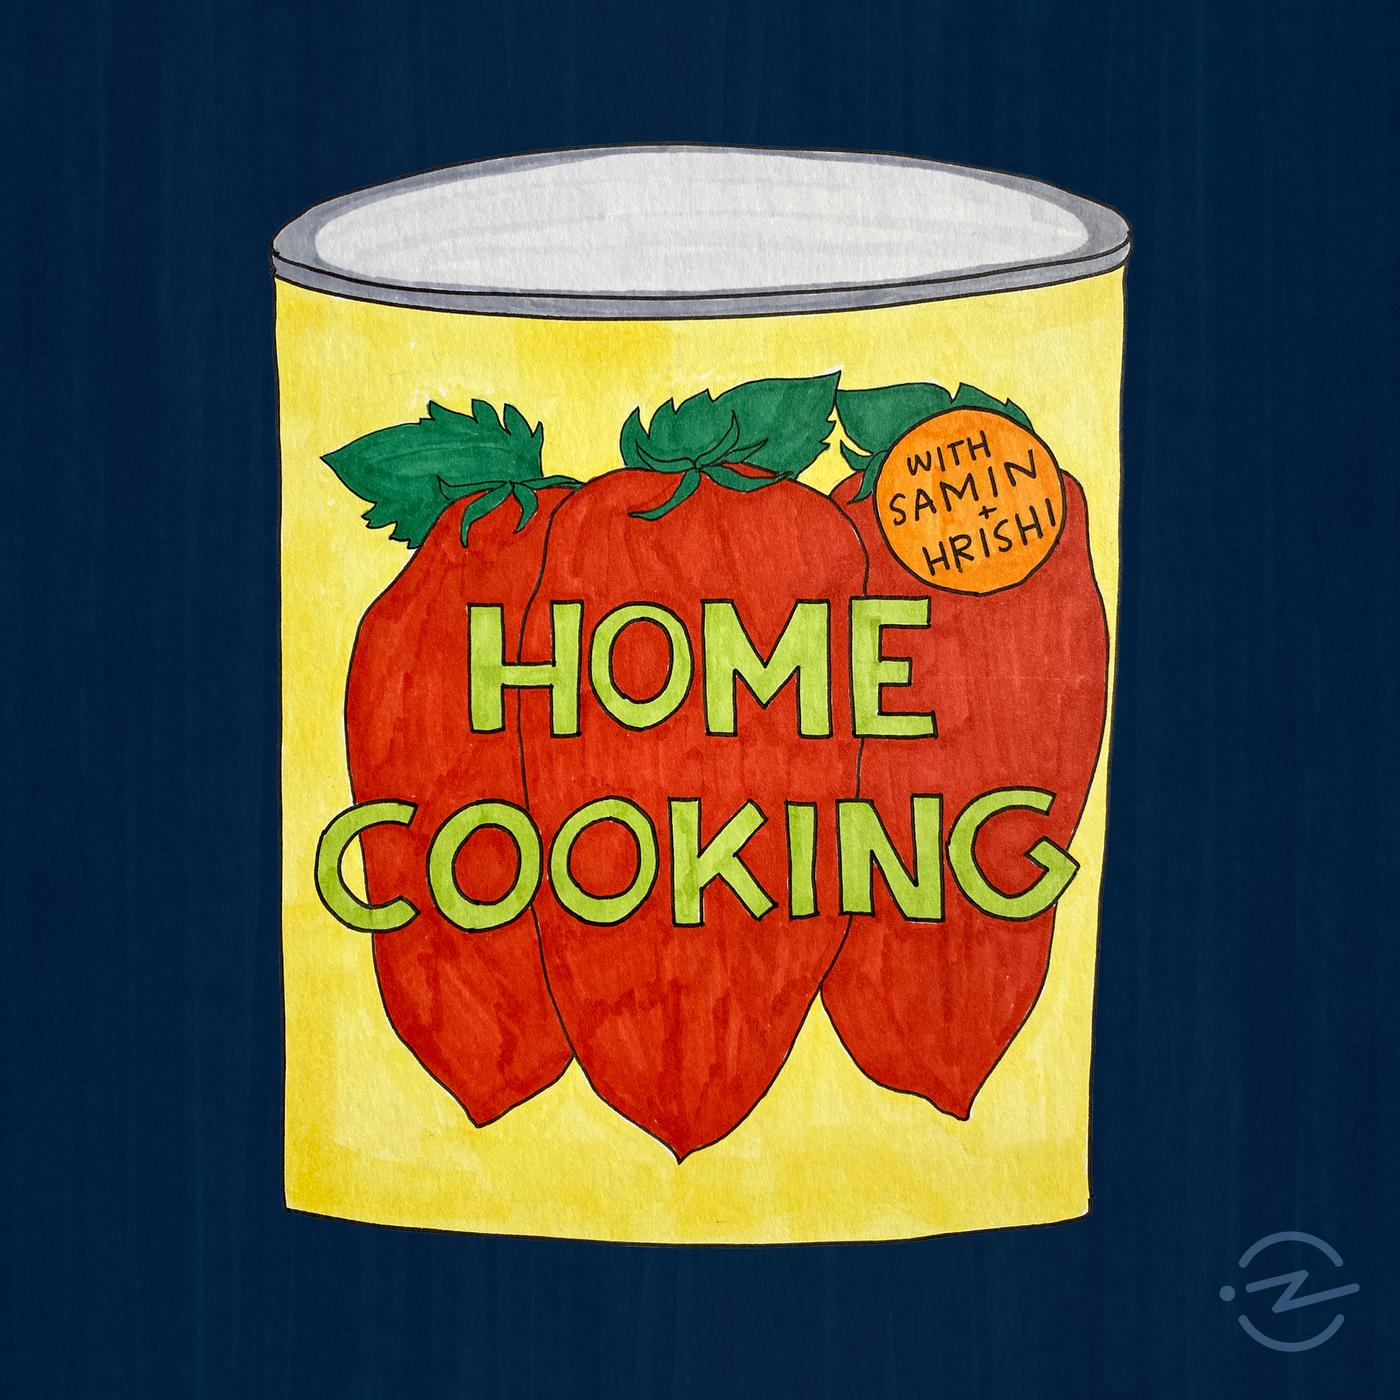 Home Cooking podcast cover